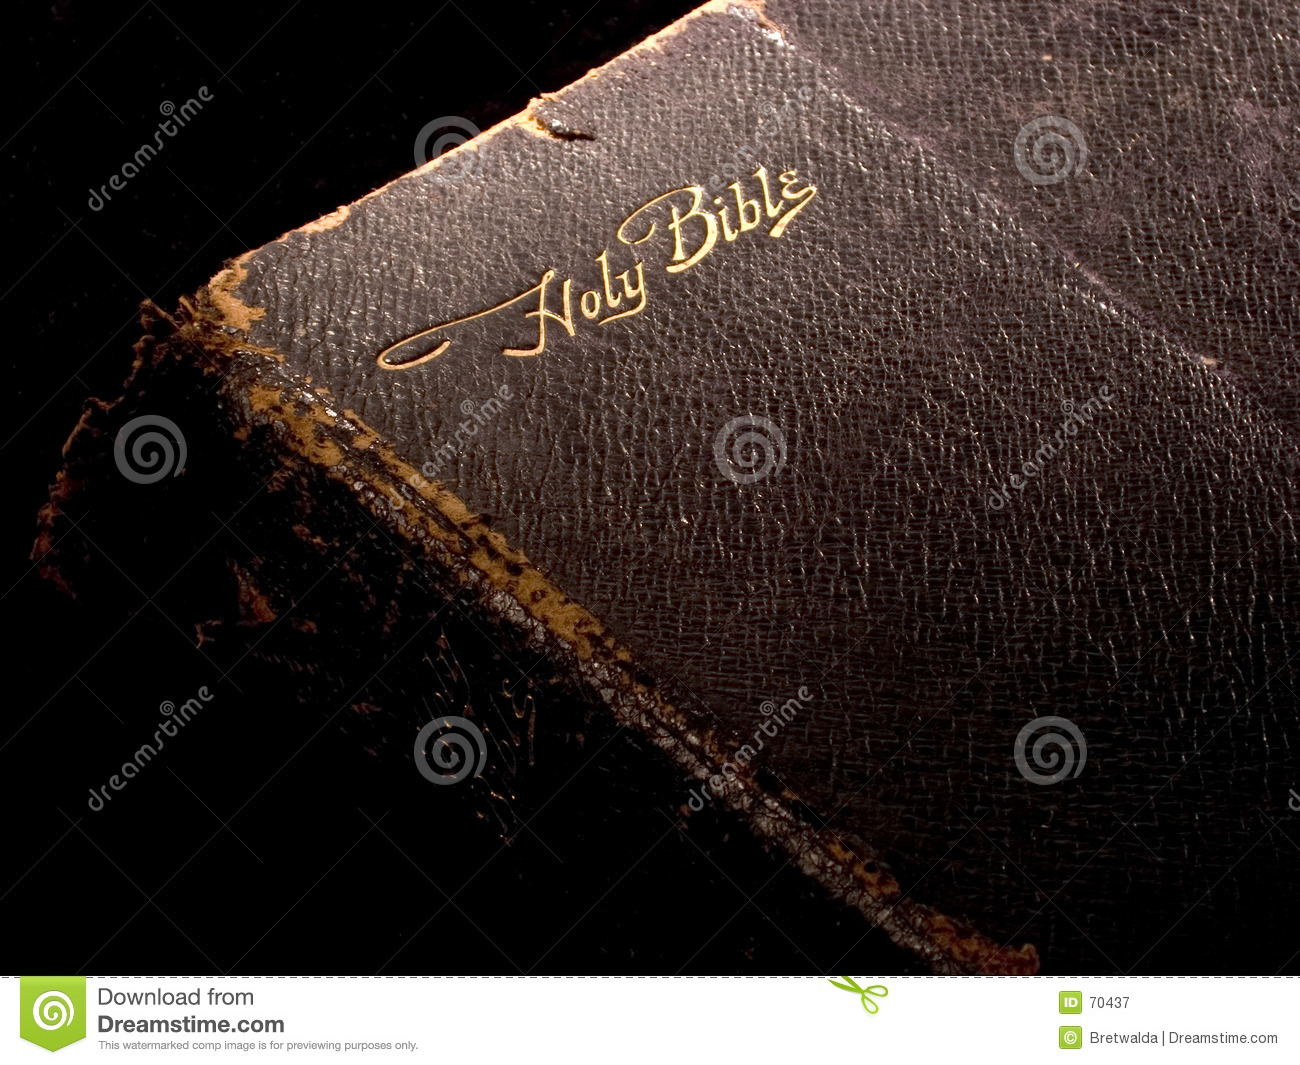 Bible on Black 1